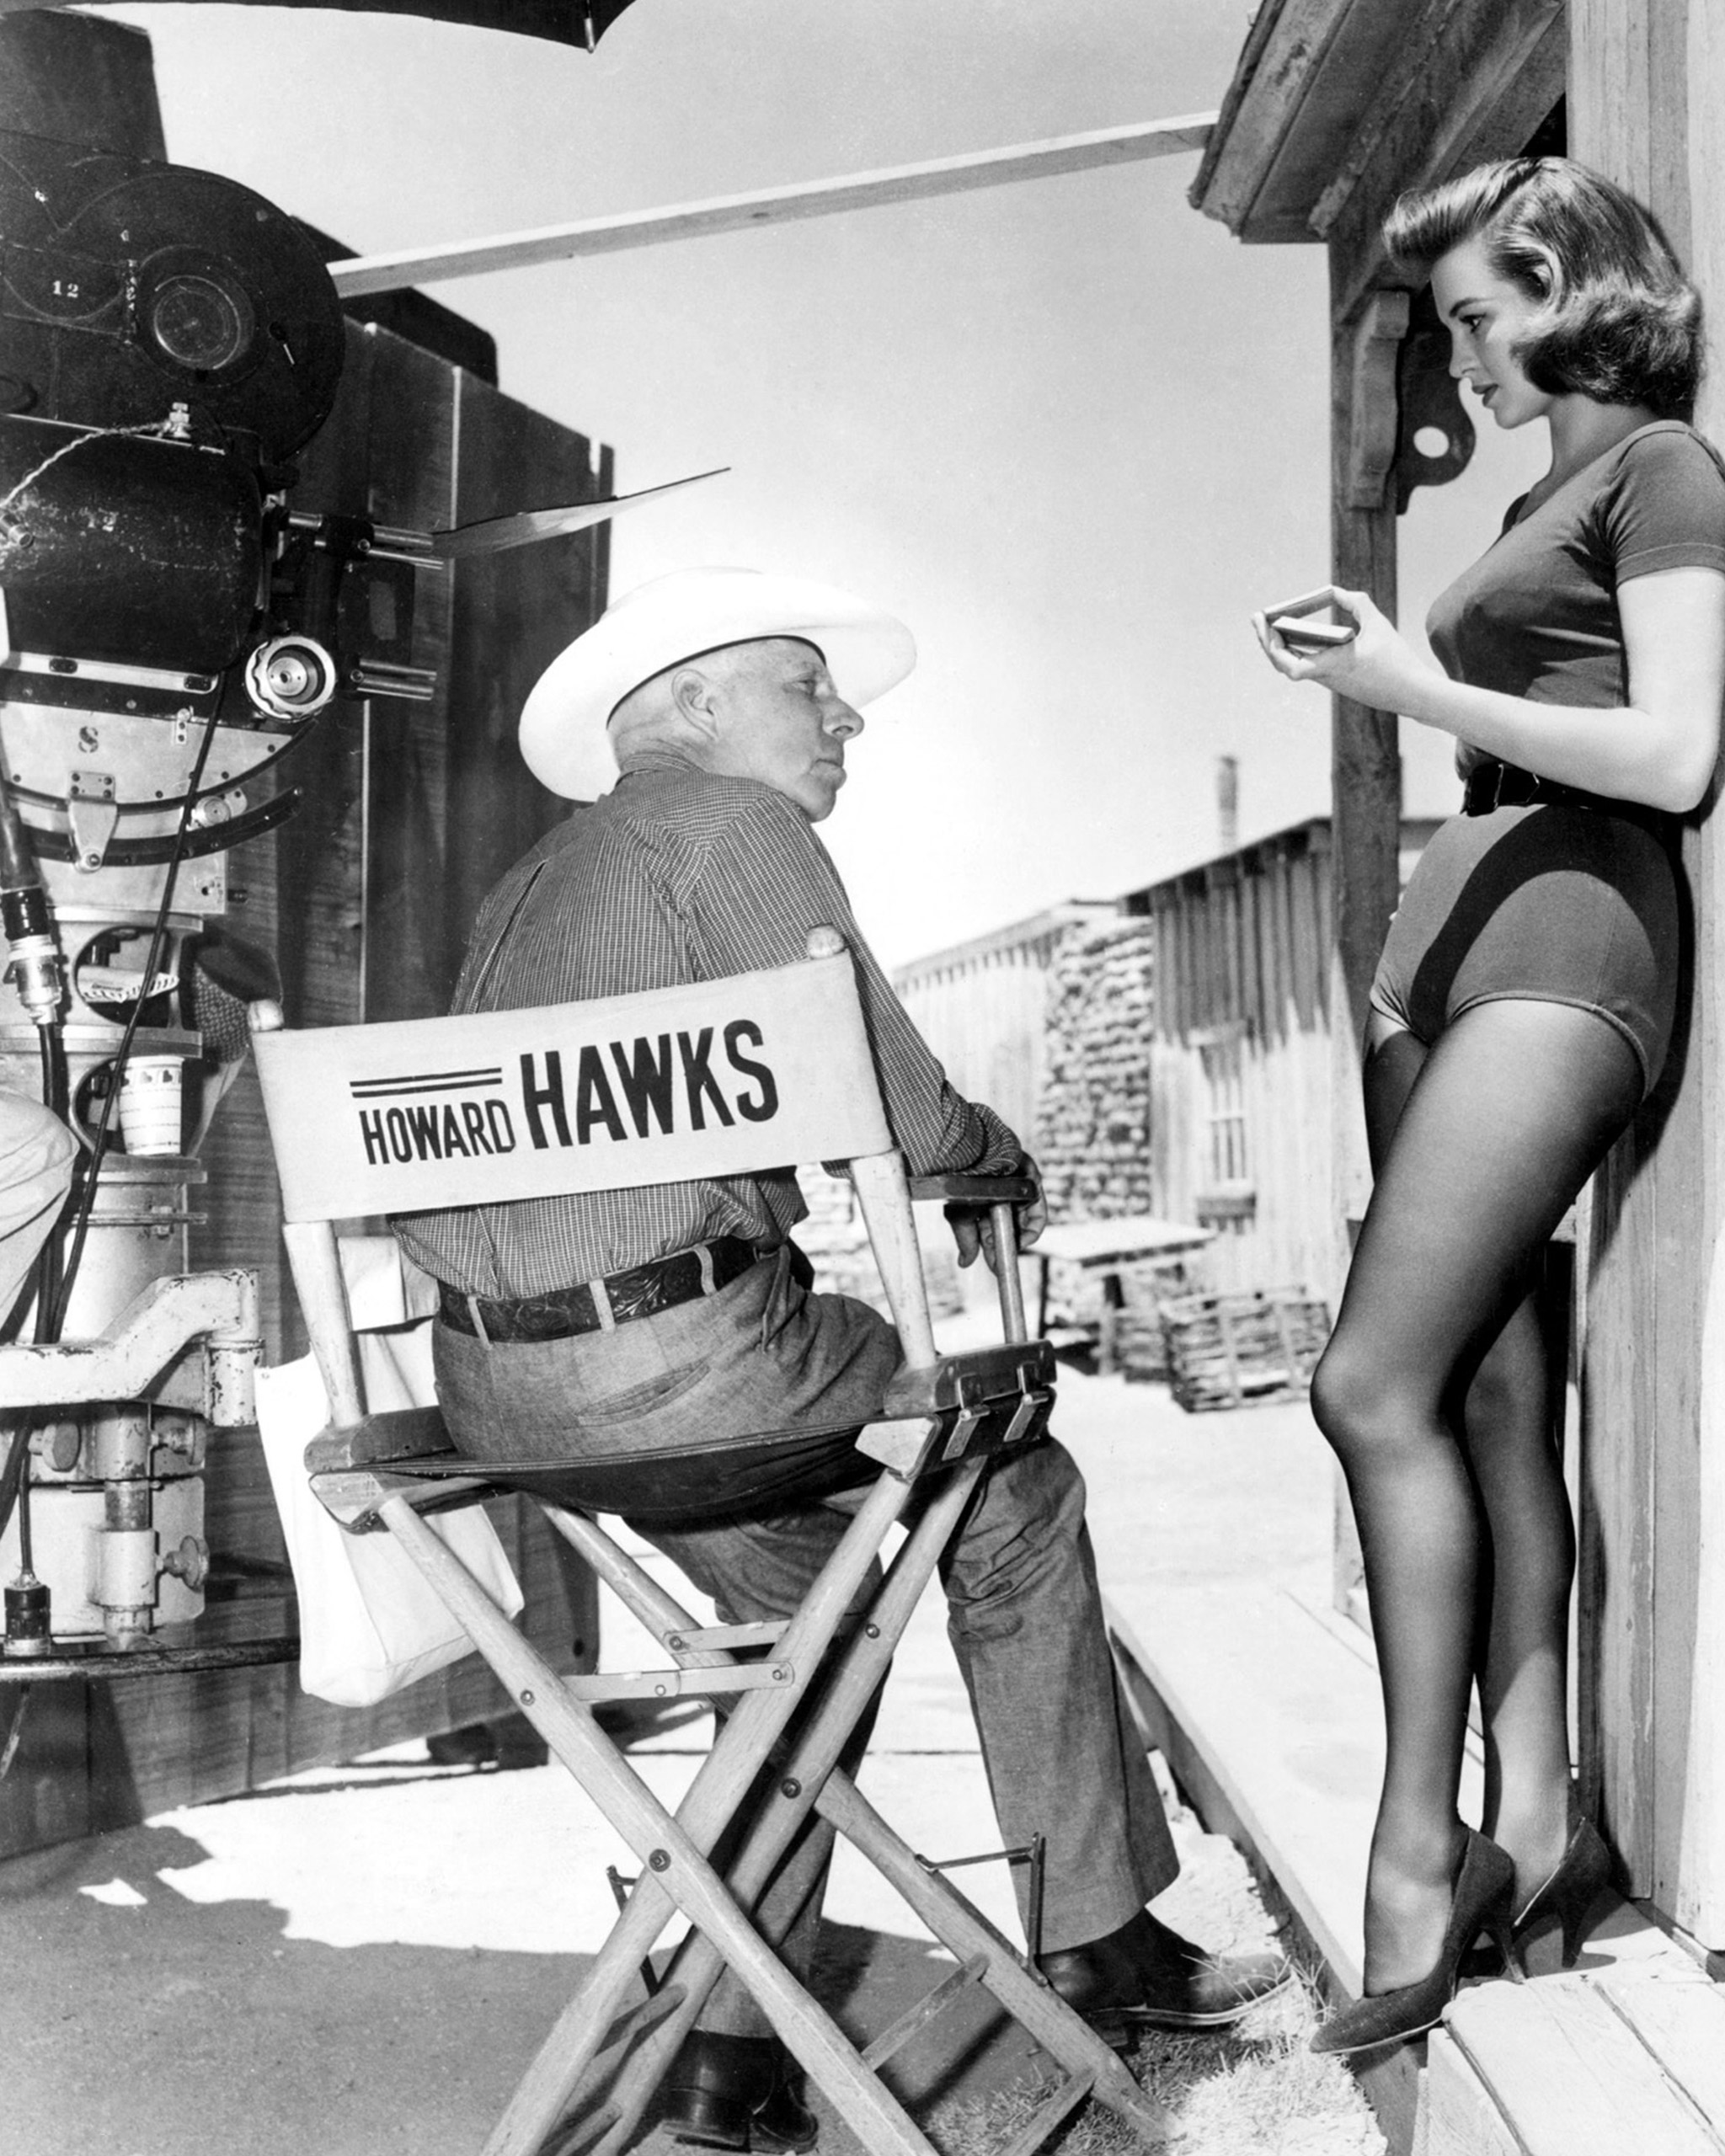 Director Howard Hawks with Angie Dickinson on the set of 'Rio Bravo', 1959.